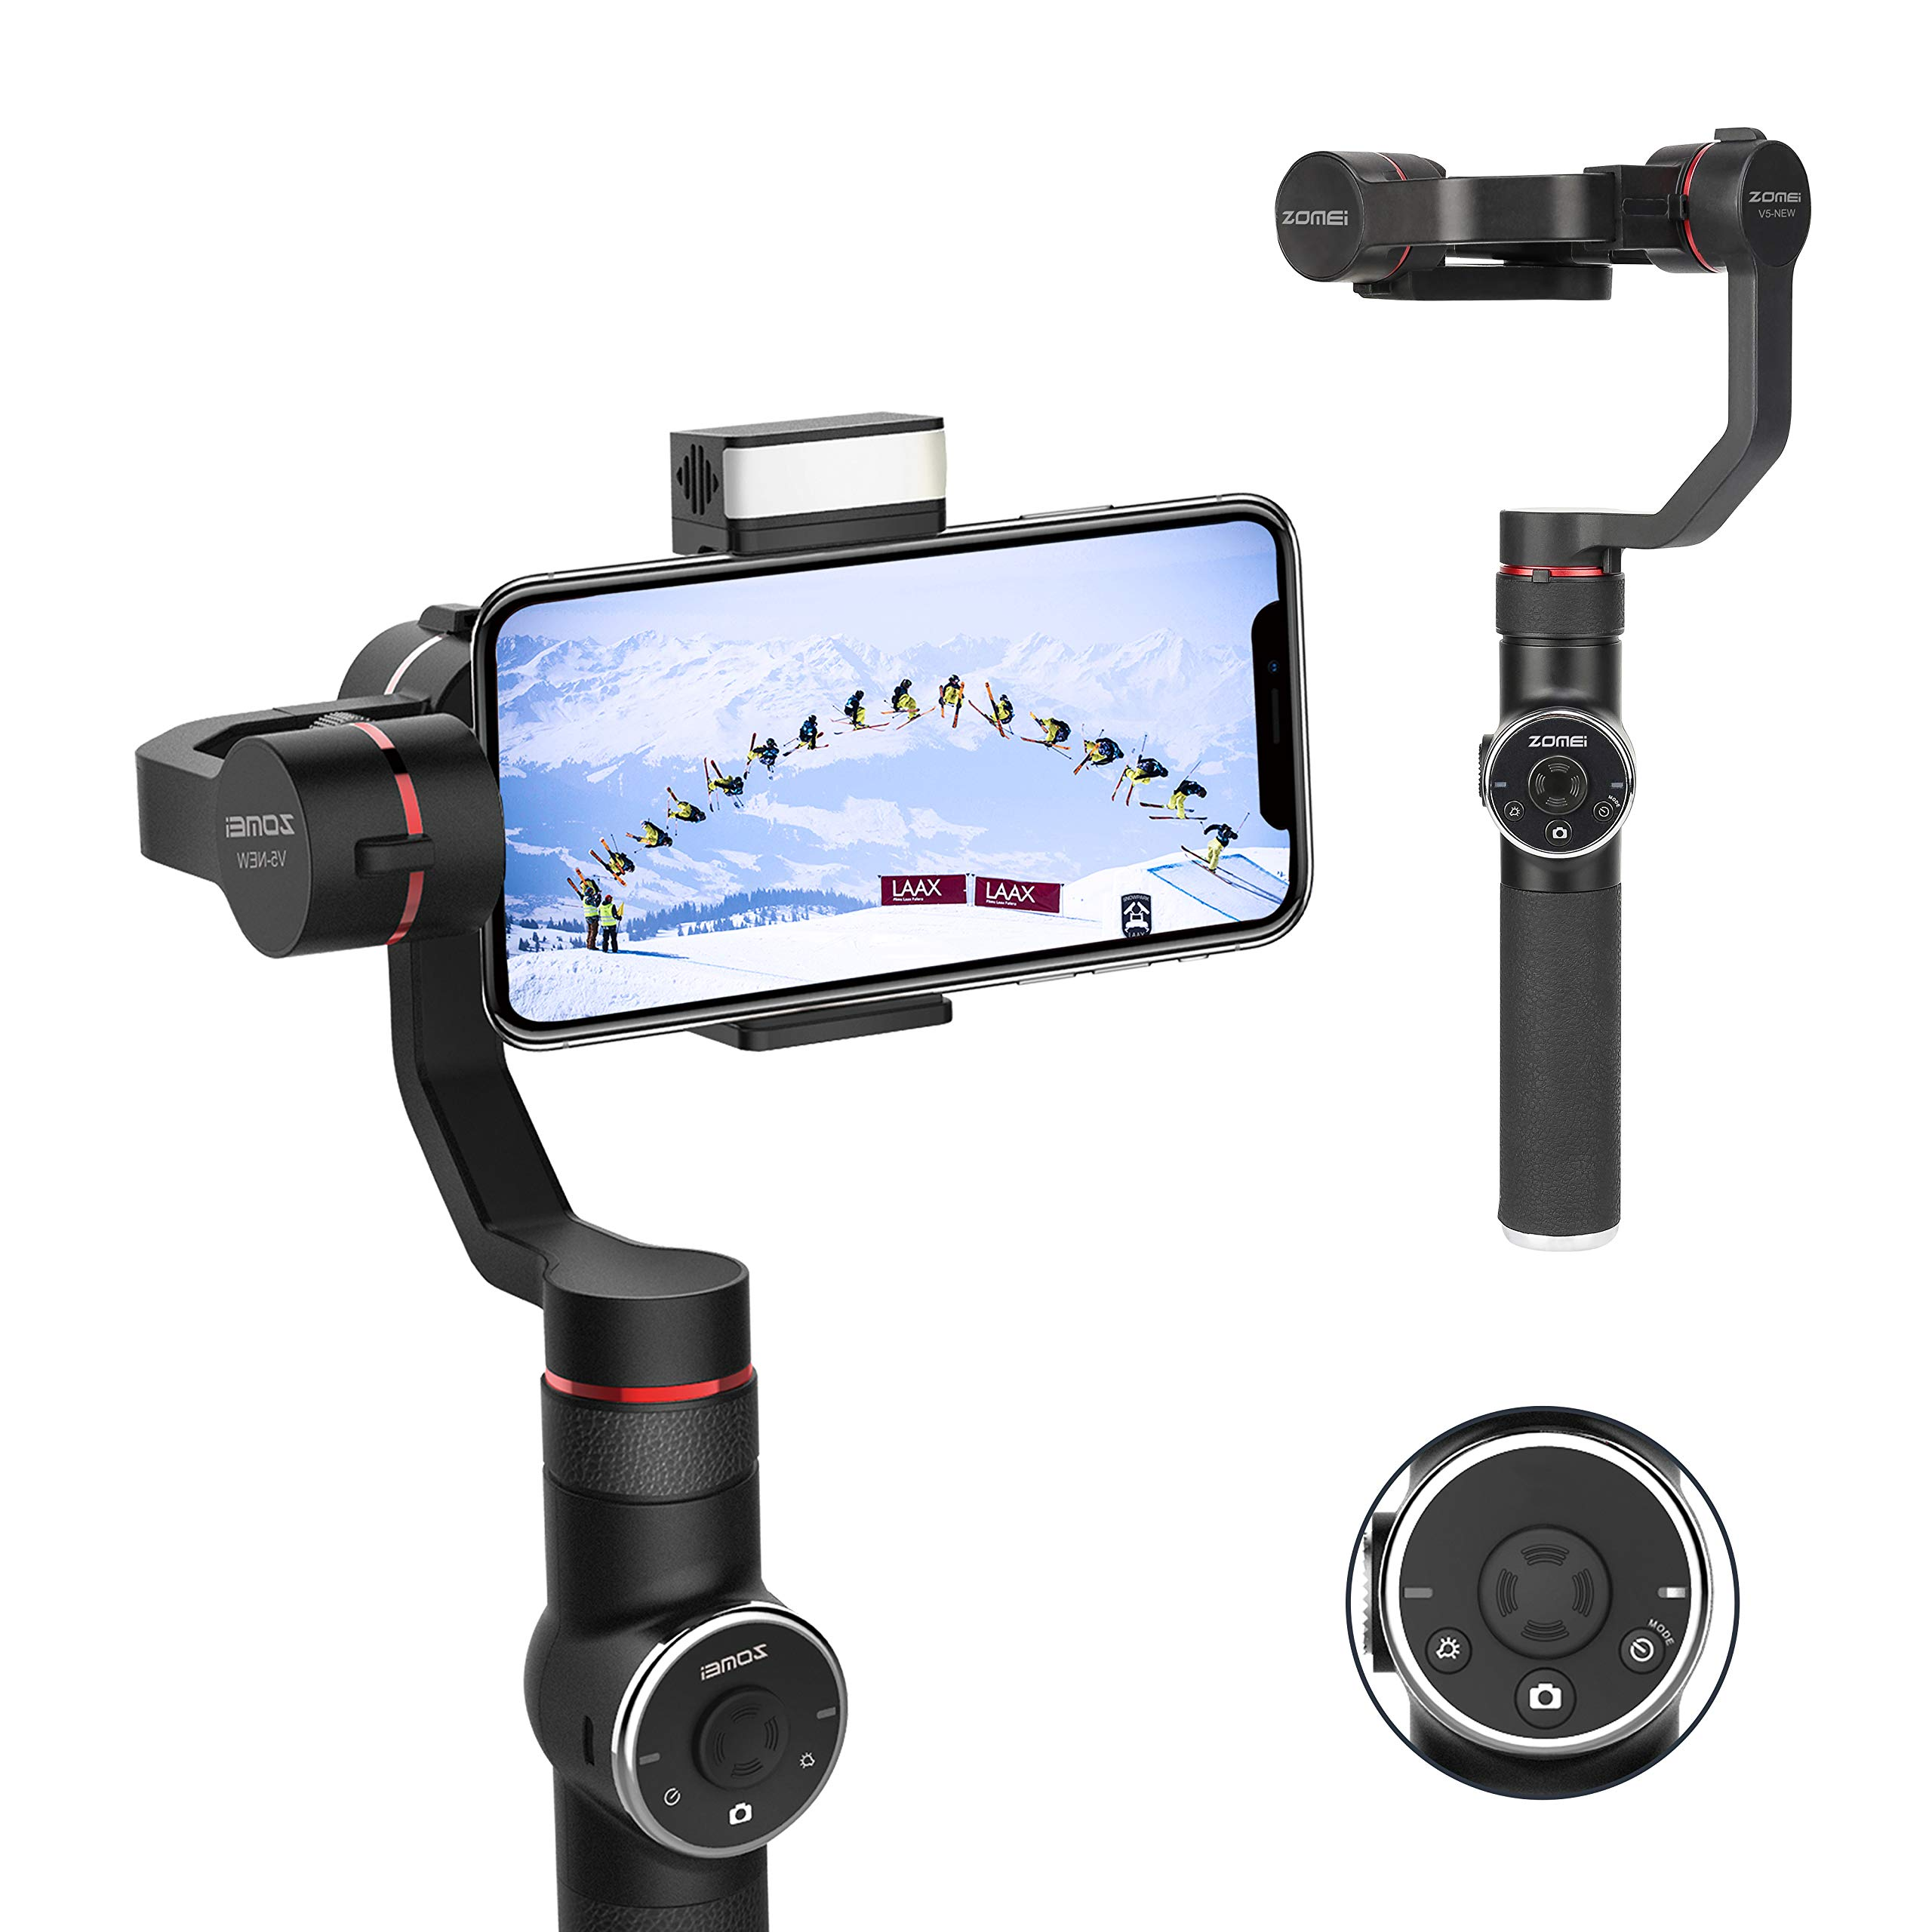 ZOMEI Gimbal Stabilizer Mobile 3 Axis Handheld Gimbals for Smartphone, w/Focus Pull & Zoom for iPhone XR/XS/X/8/7/6 P, Android Samsung S8 S7 Huawei P20 Pro Mate 10, with Time Lapse, Auto Tracking